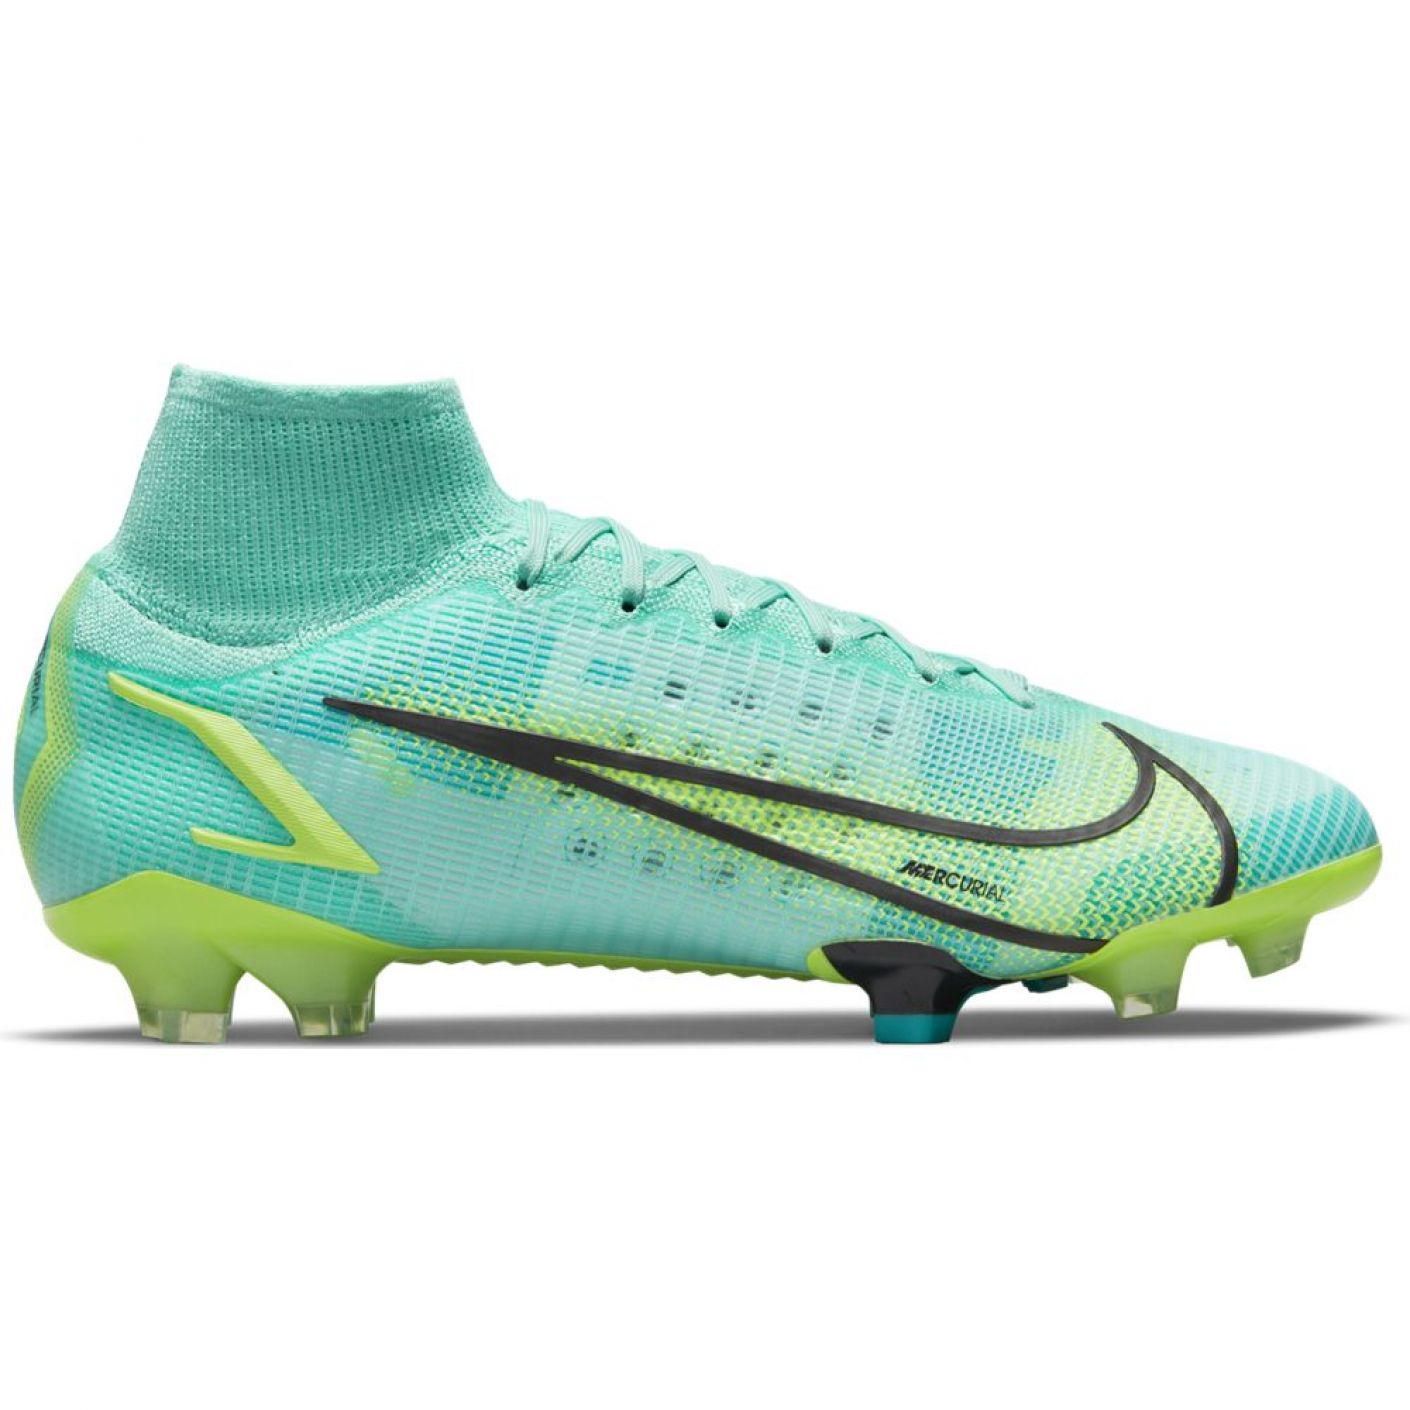 Nike Mercurial Superfly 8 Elite Gras Voetbalschoenen (FG) Turquoise Lime